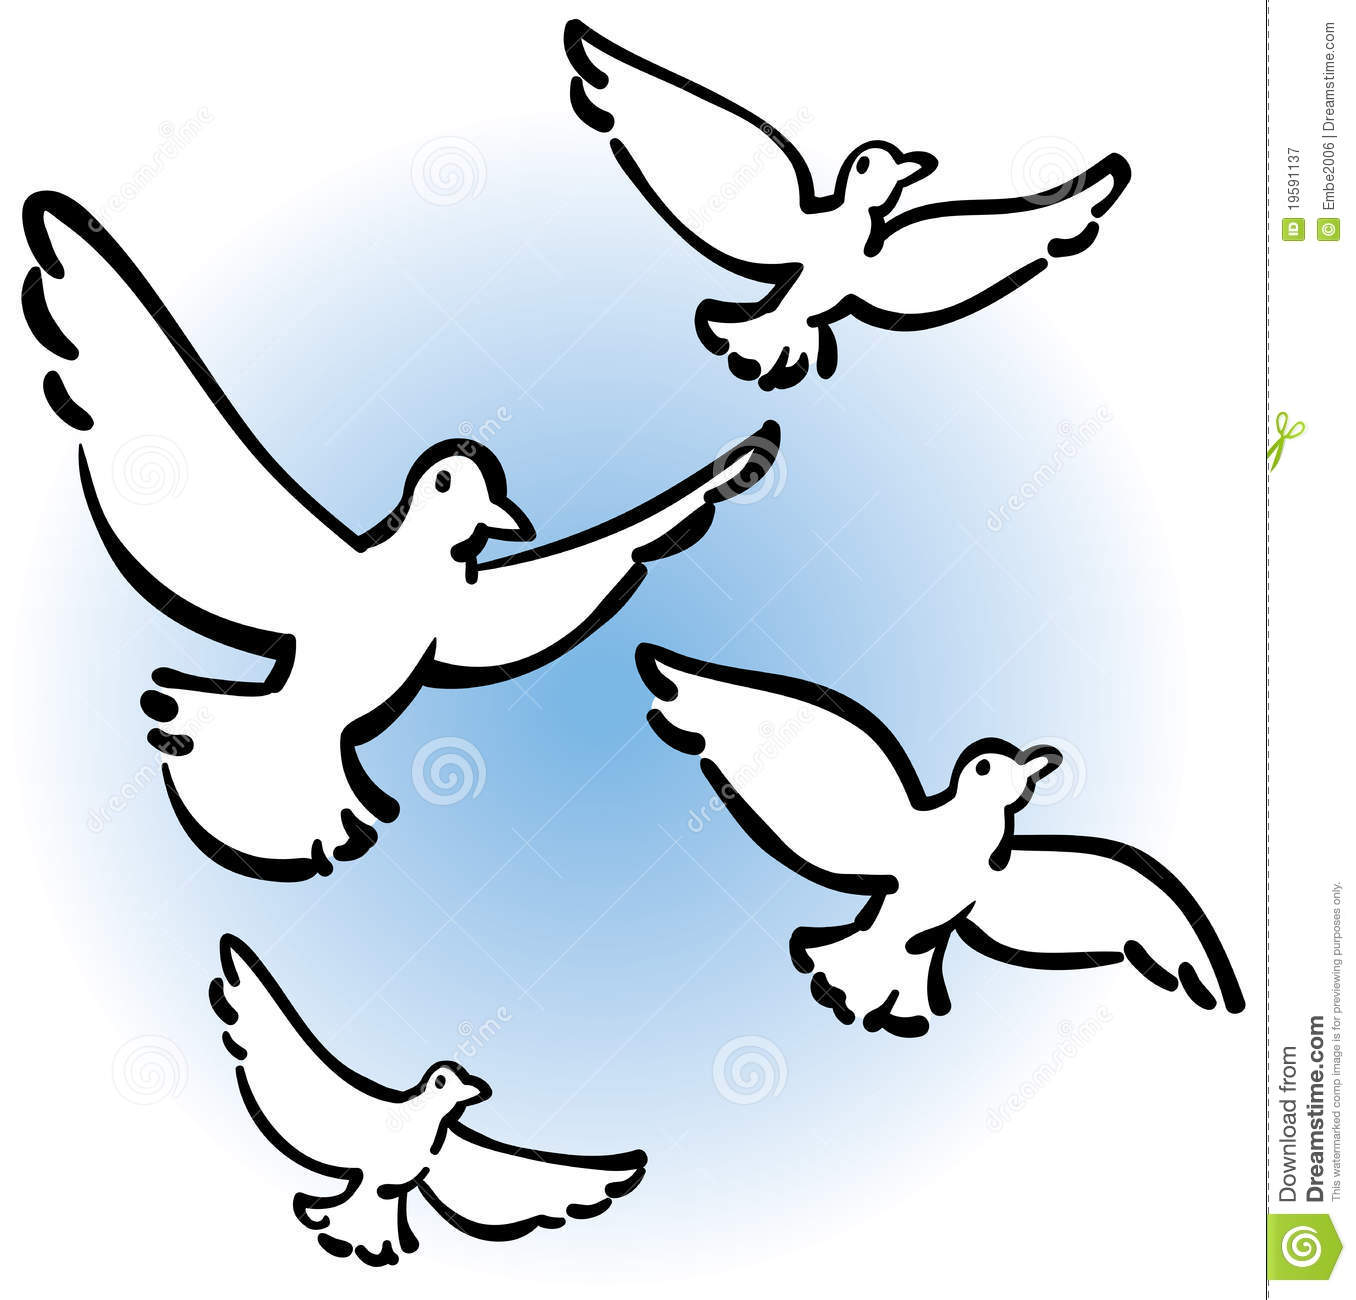 peaceful doves flying stock vector illustration of peace